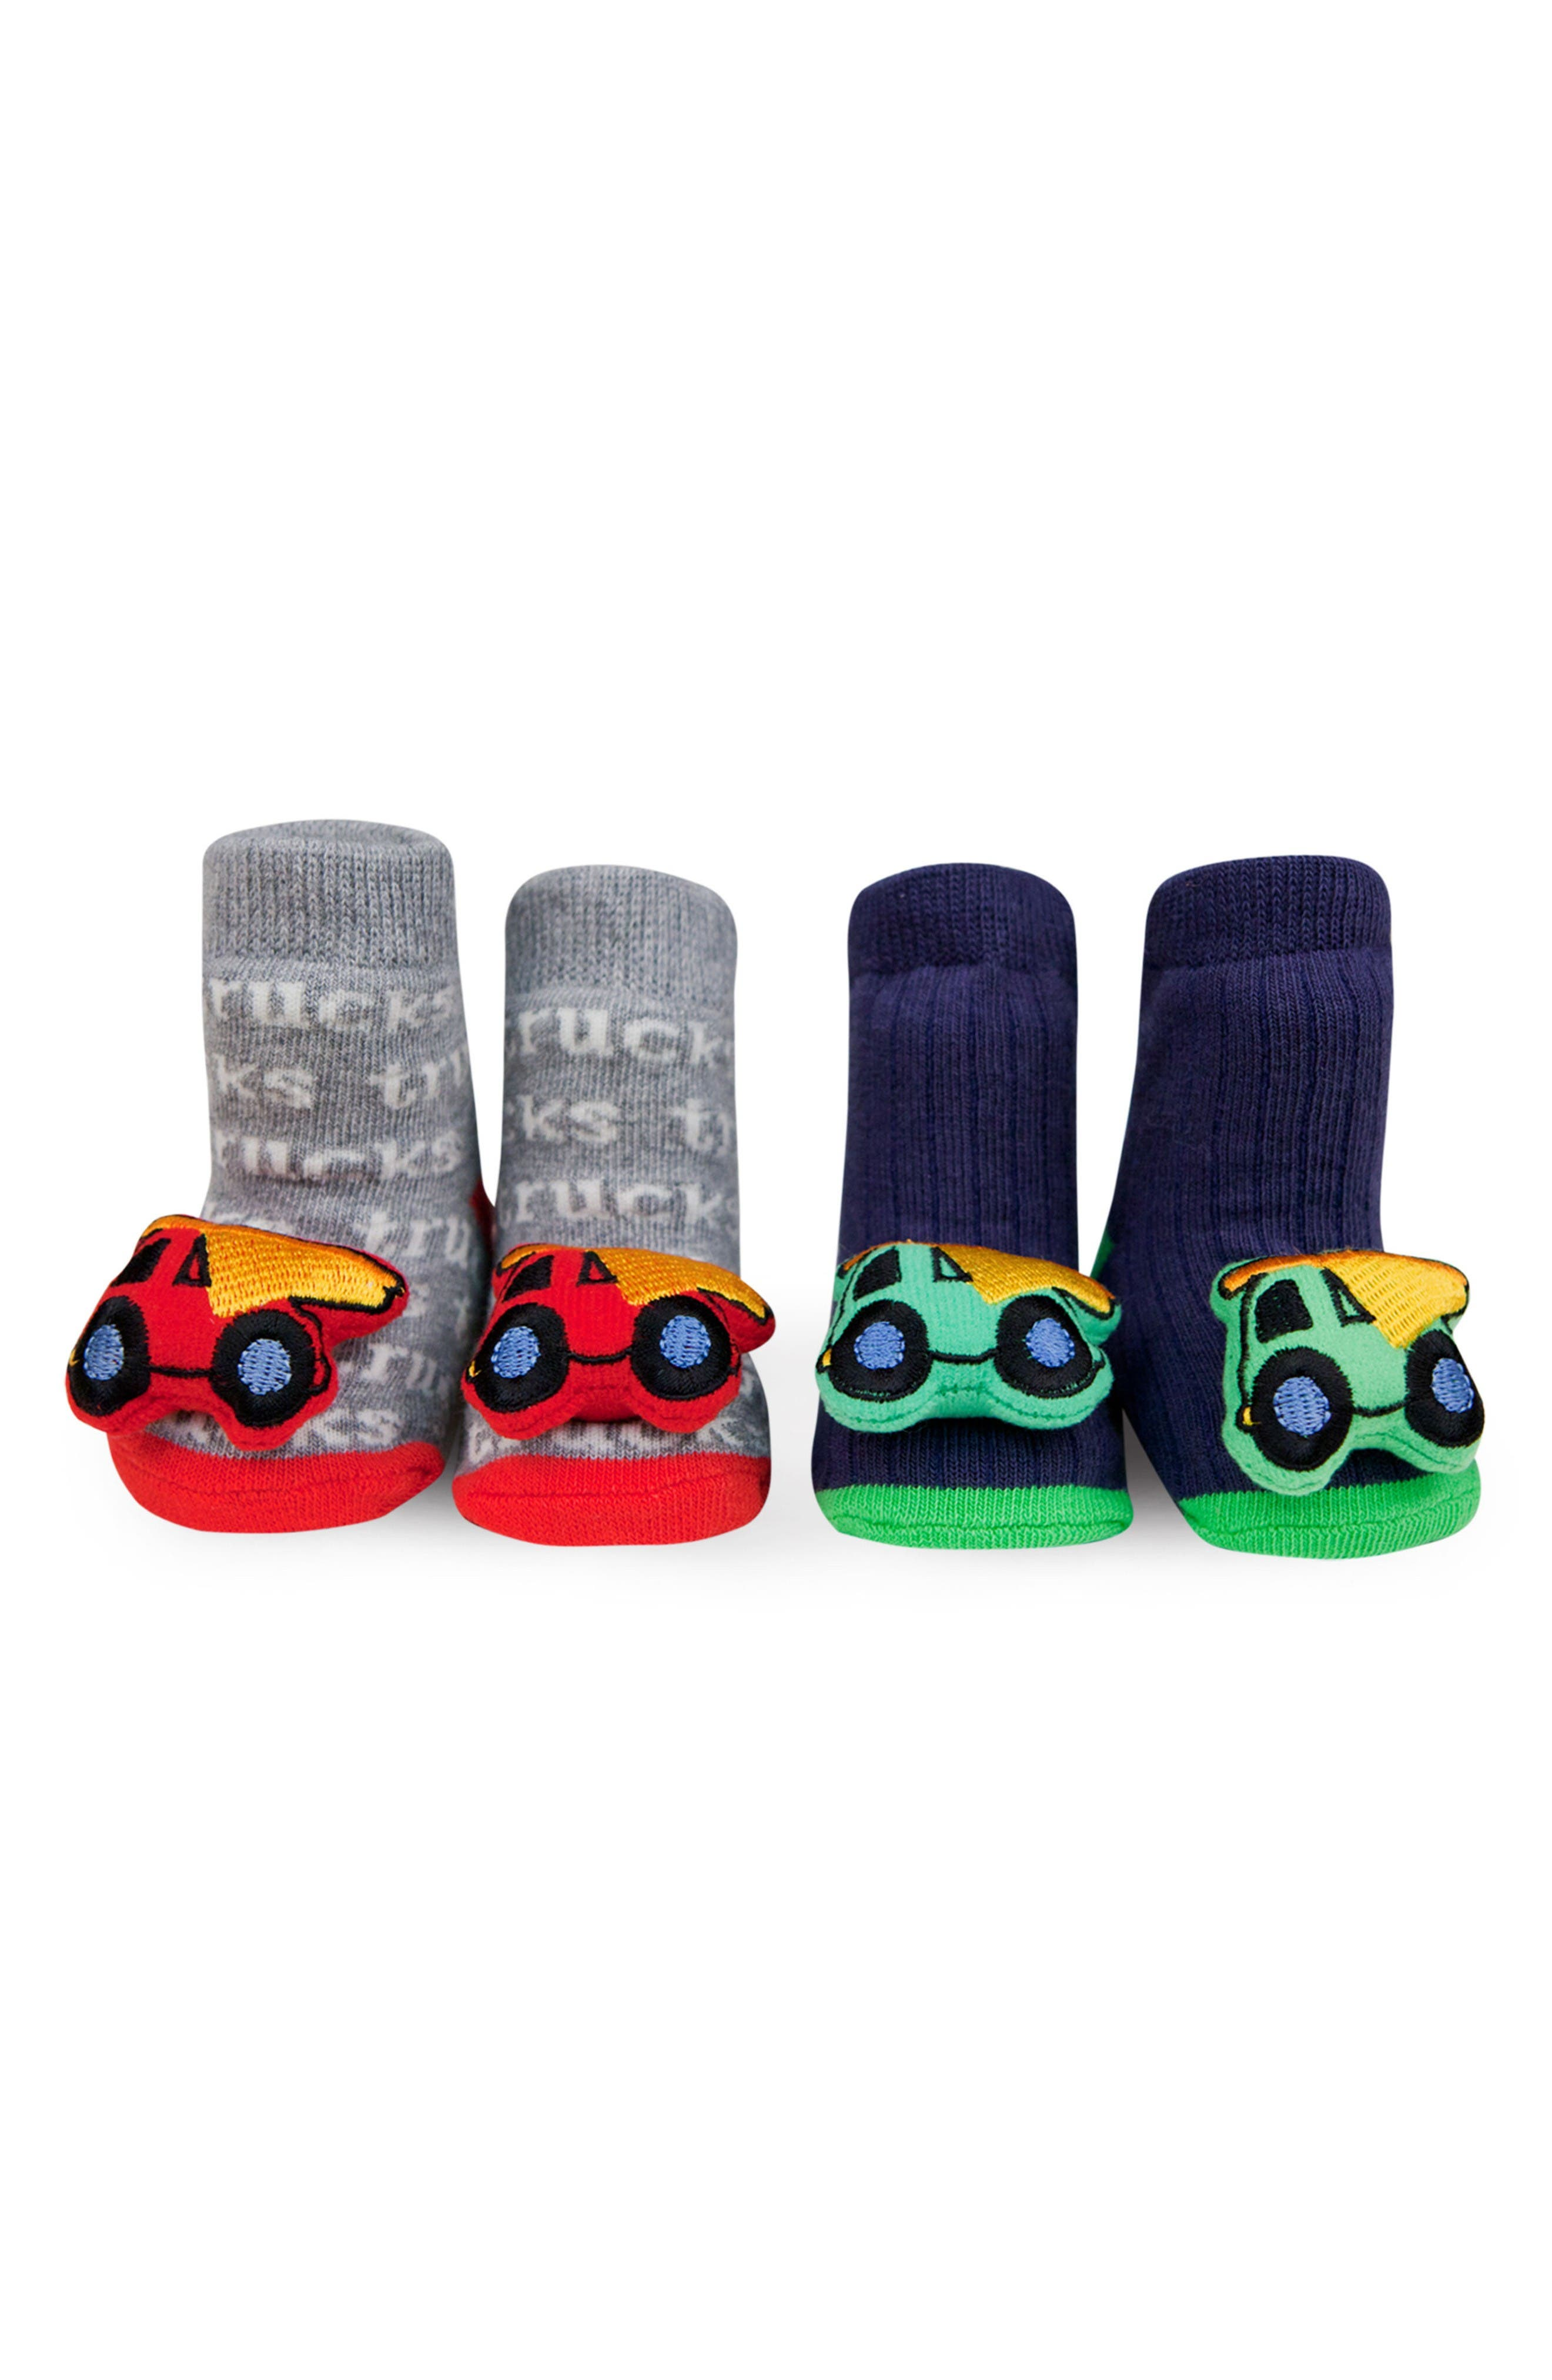 & Friends 2-Pack Vehicle Rattle Socks,                             Main thumbnail 1, color,                             Red/ Blue